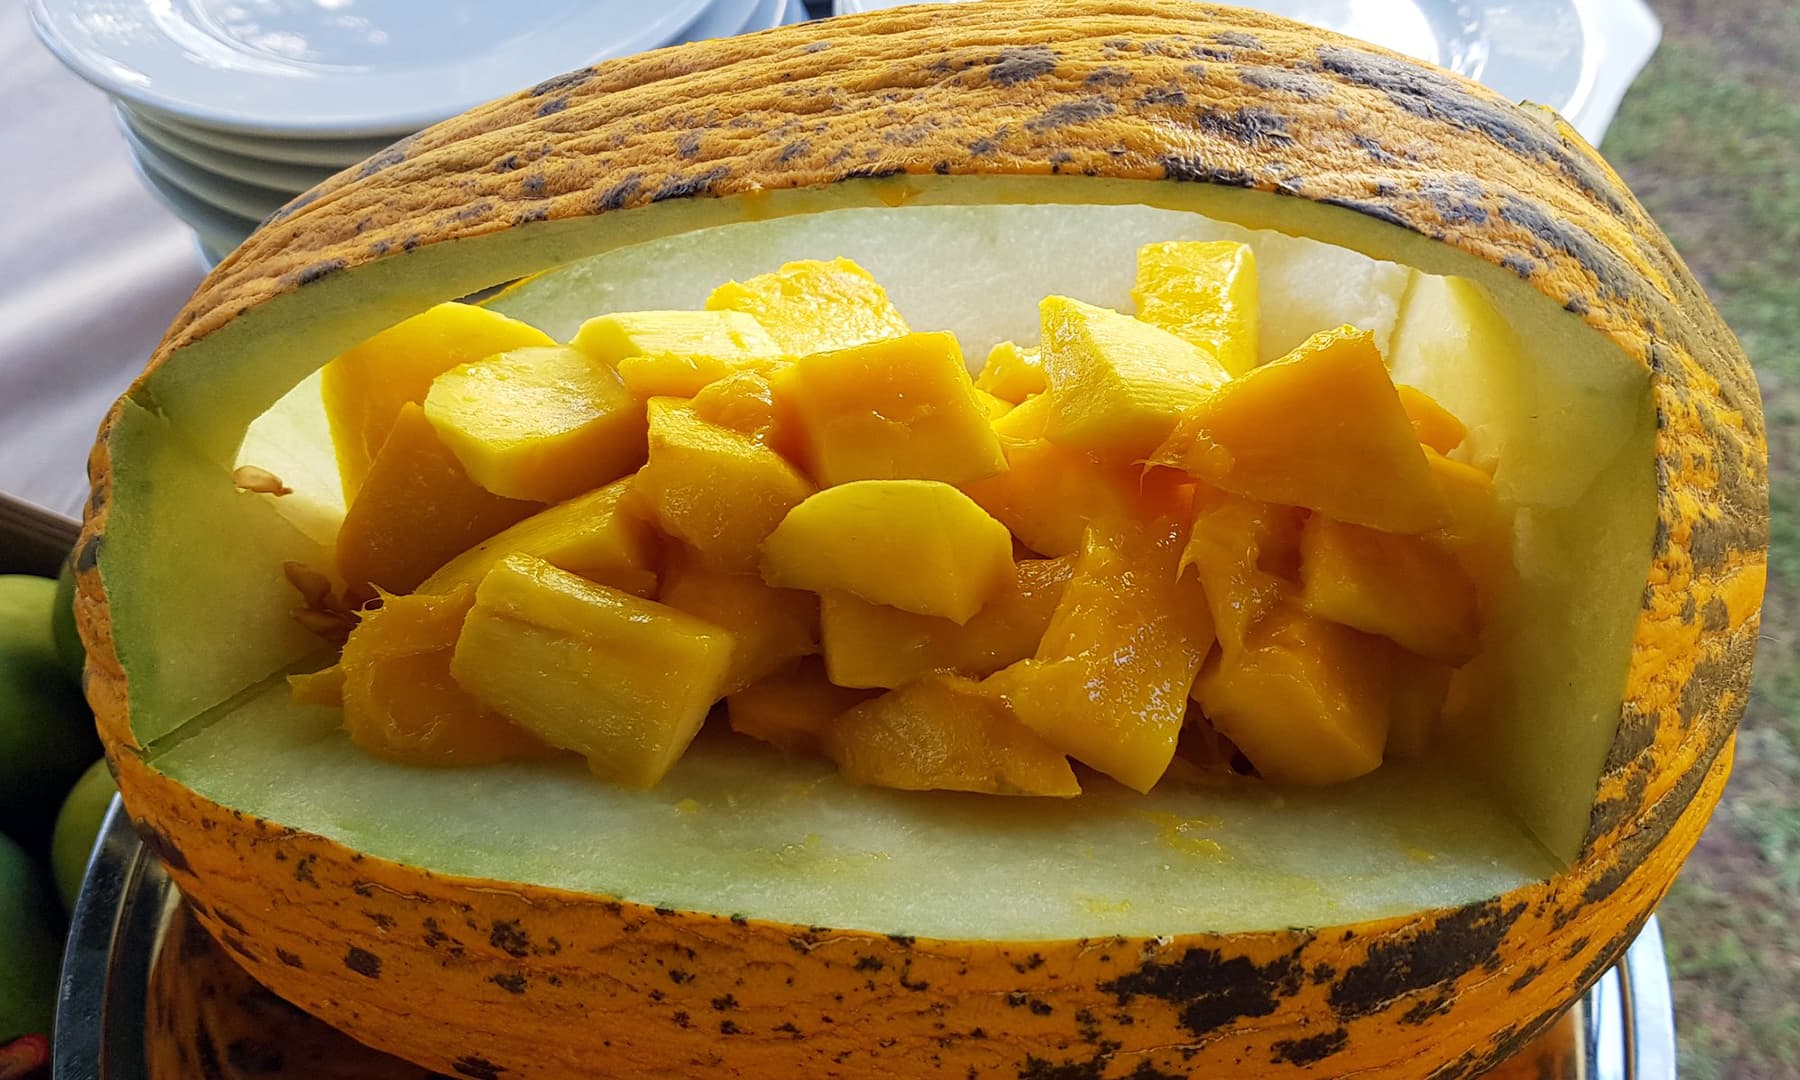 Sweet, ripe mango cut up and displayed artistically to enhance its appeal.